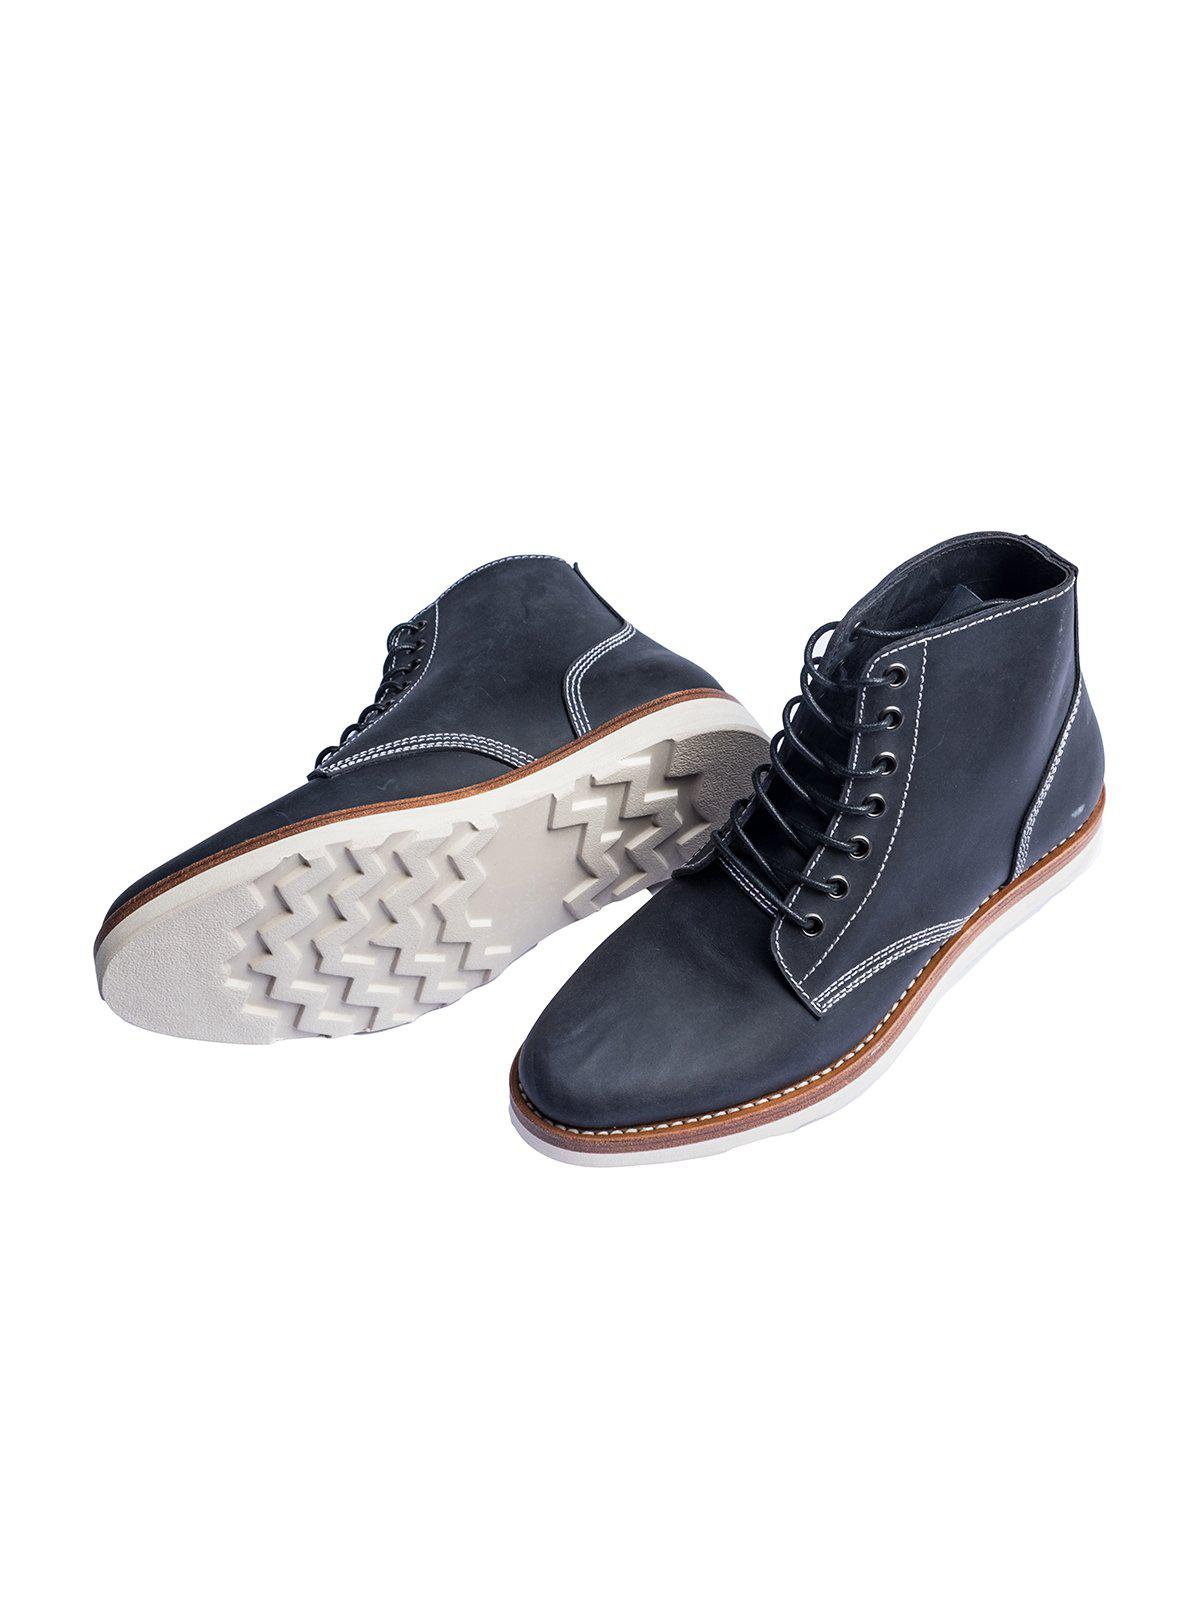 Santalum Plain Toe Service Boots Navy - MORE by Morello Indonesia